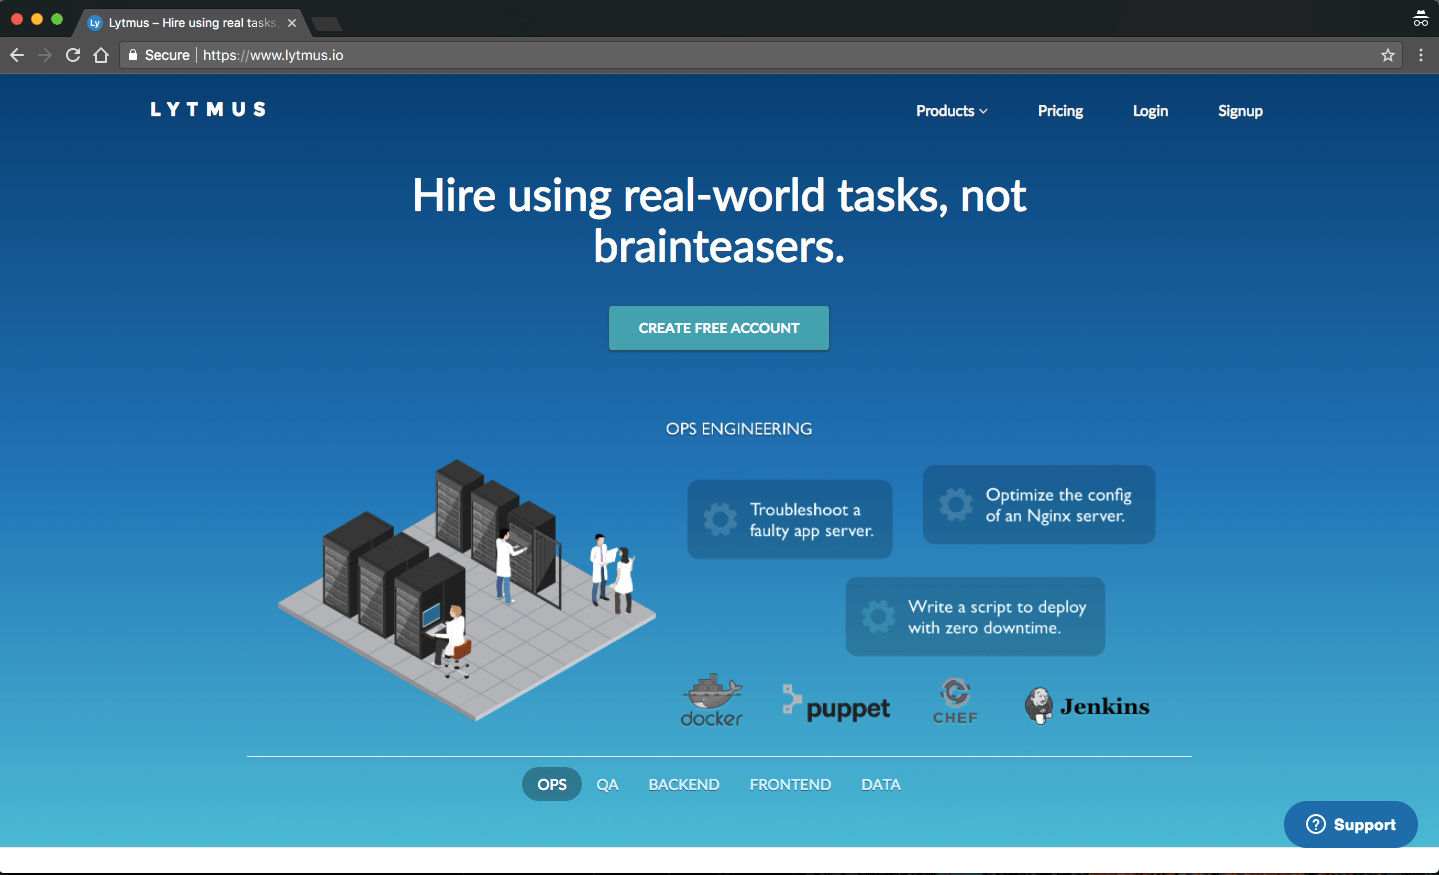 What Is This Tool For? Lytmus Helps Copanies Hire Developers For Web, Ops,  Qa, And Data Roles Using Real-World Tasks, Not Brainteasers.